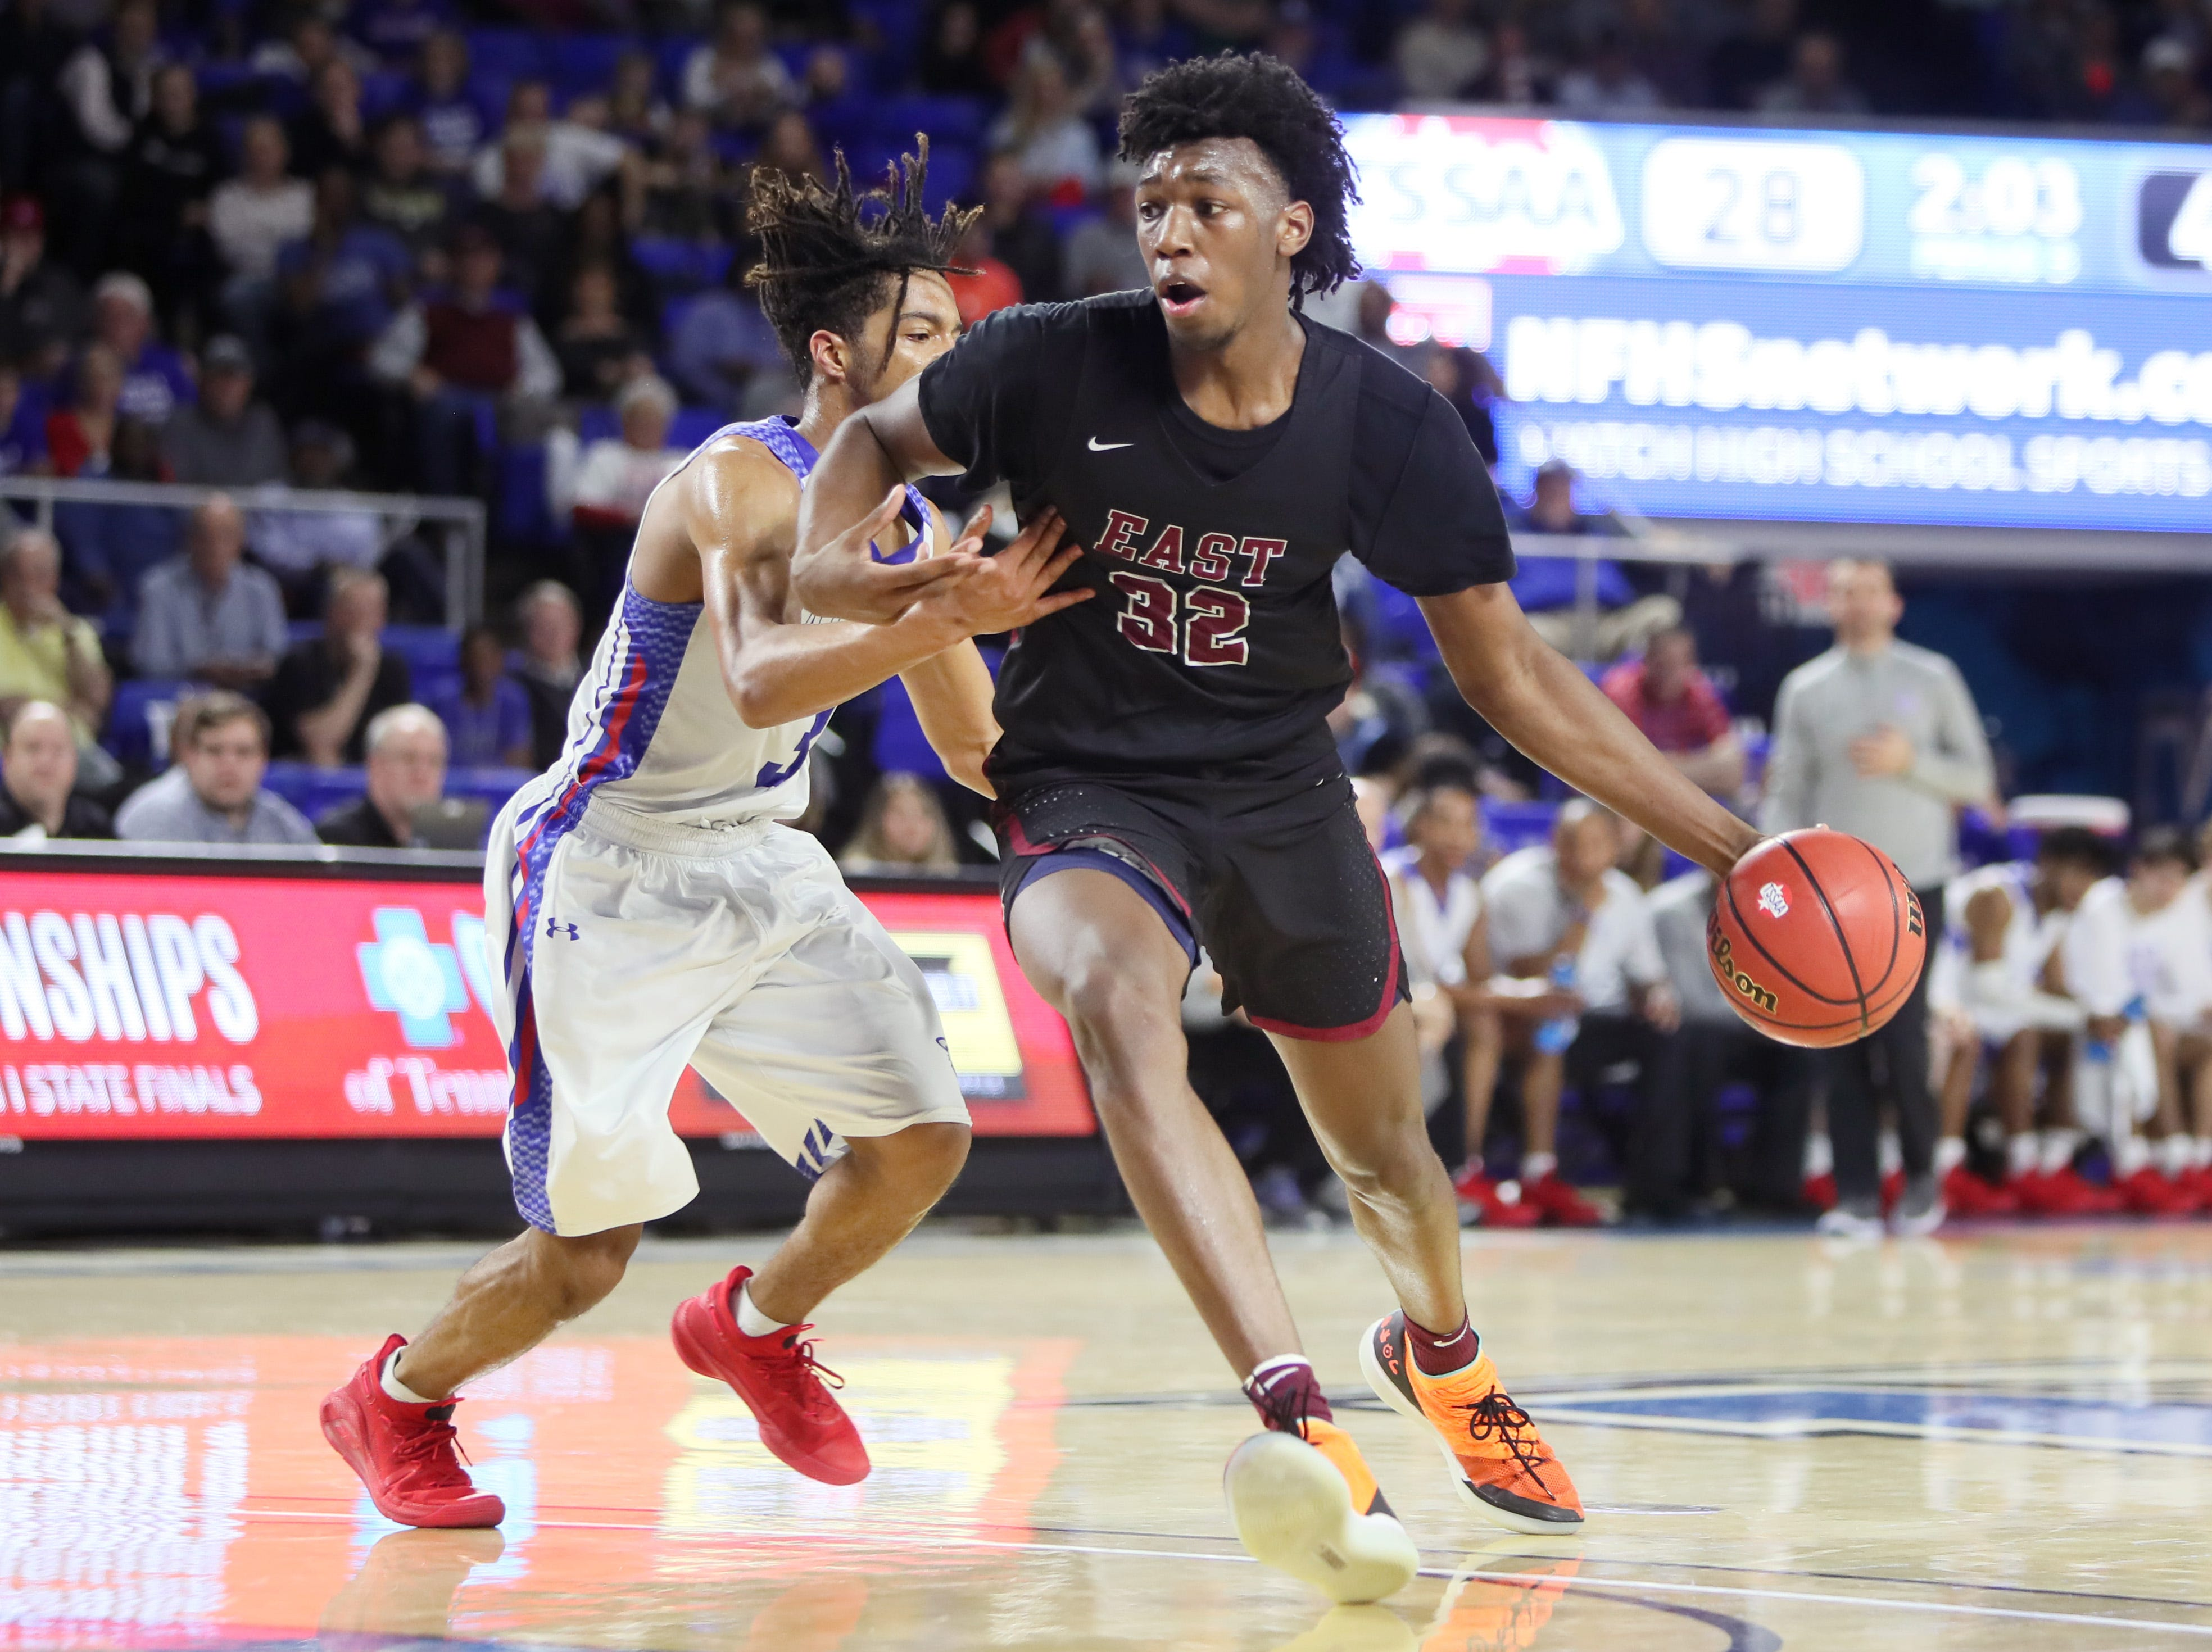 Memphis East's James Wiseman drives past Cleveland's Isaiah Johnson during the TSSAA Division I basketball state tournament at the Murphy Center in Murfreesboro, Tenn. on Thursday, March 14, 2019.